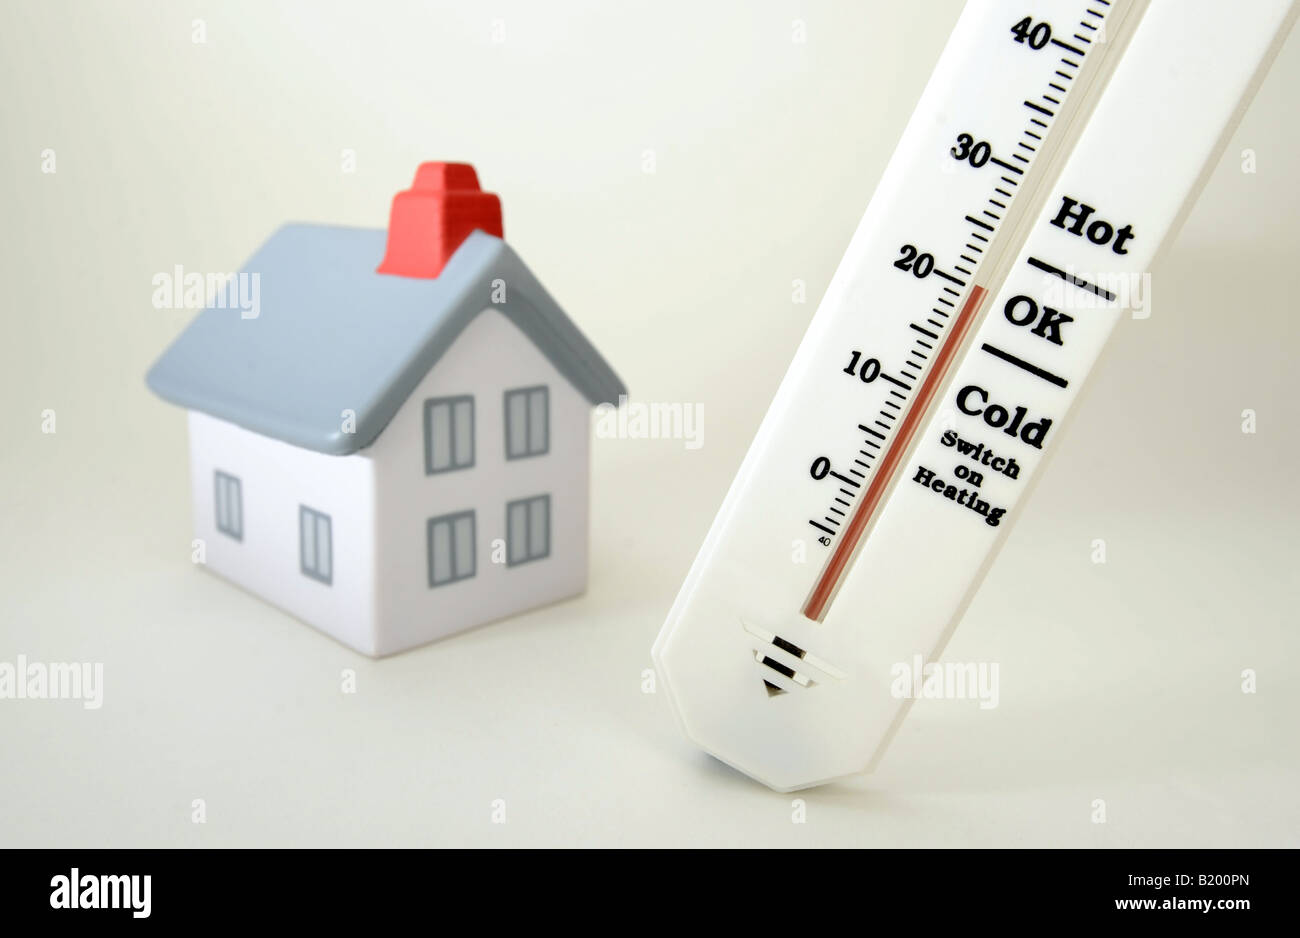 HOUSE WITH THERMOMETER SHOWING 20 DEGREES CELCIUSROOM